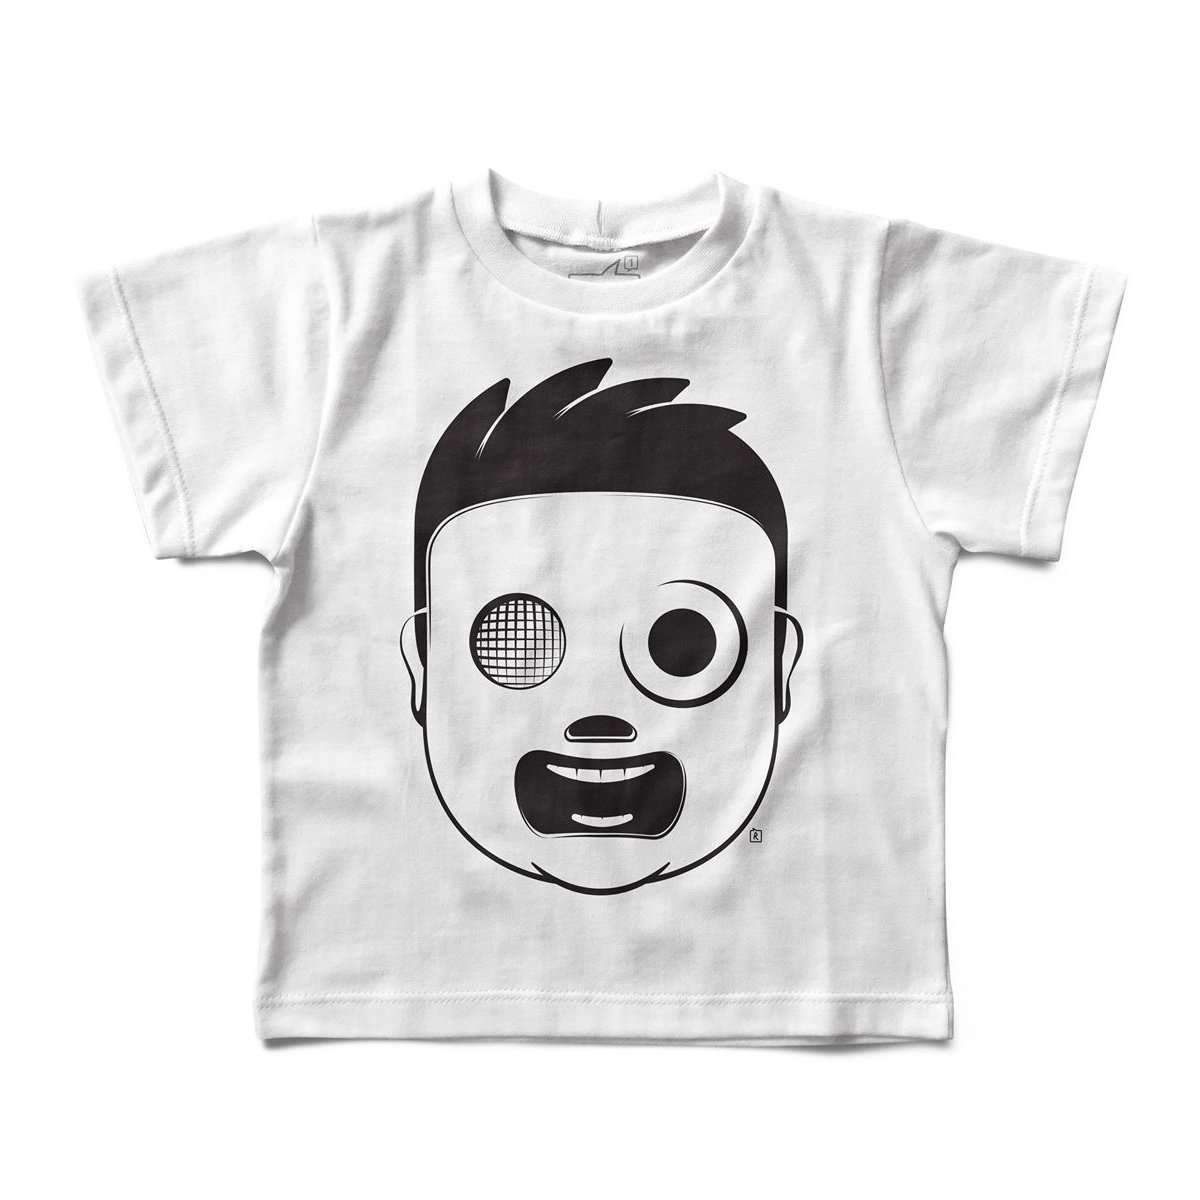 4f08dd384 Baby Slipknot T-Shirt | Teeny Rockers